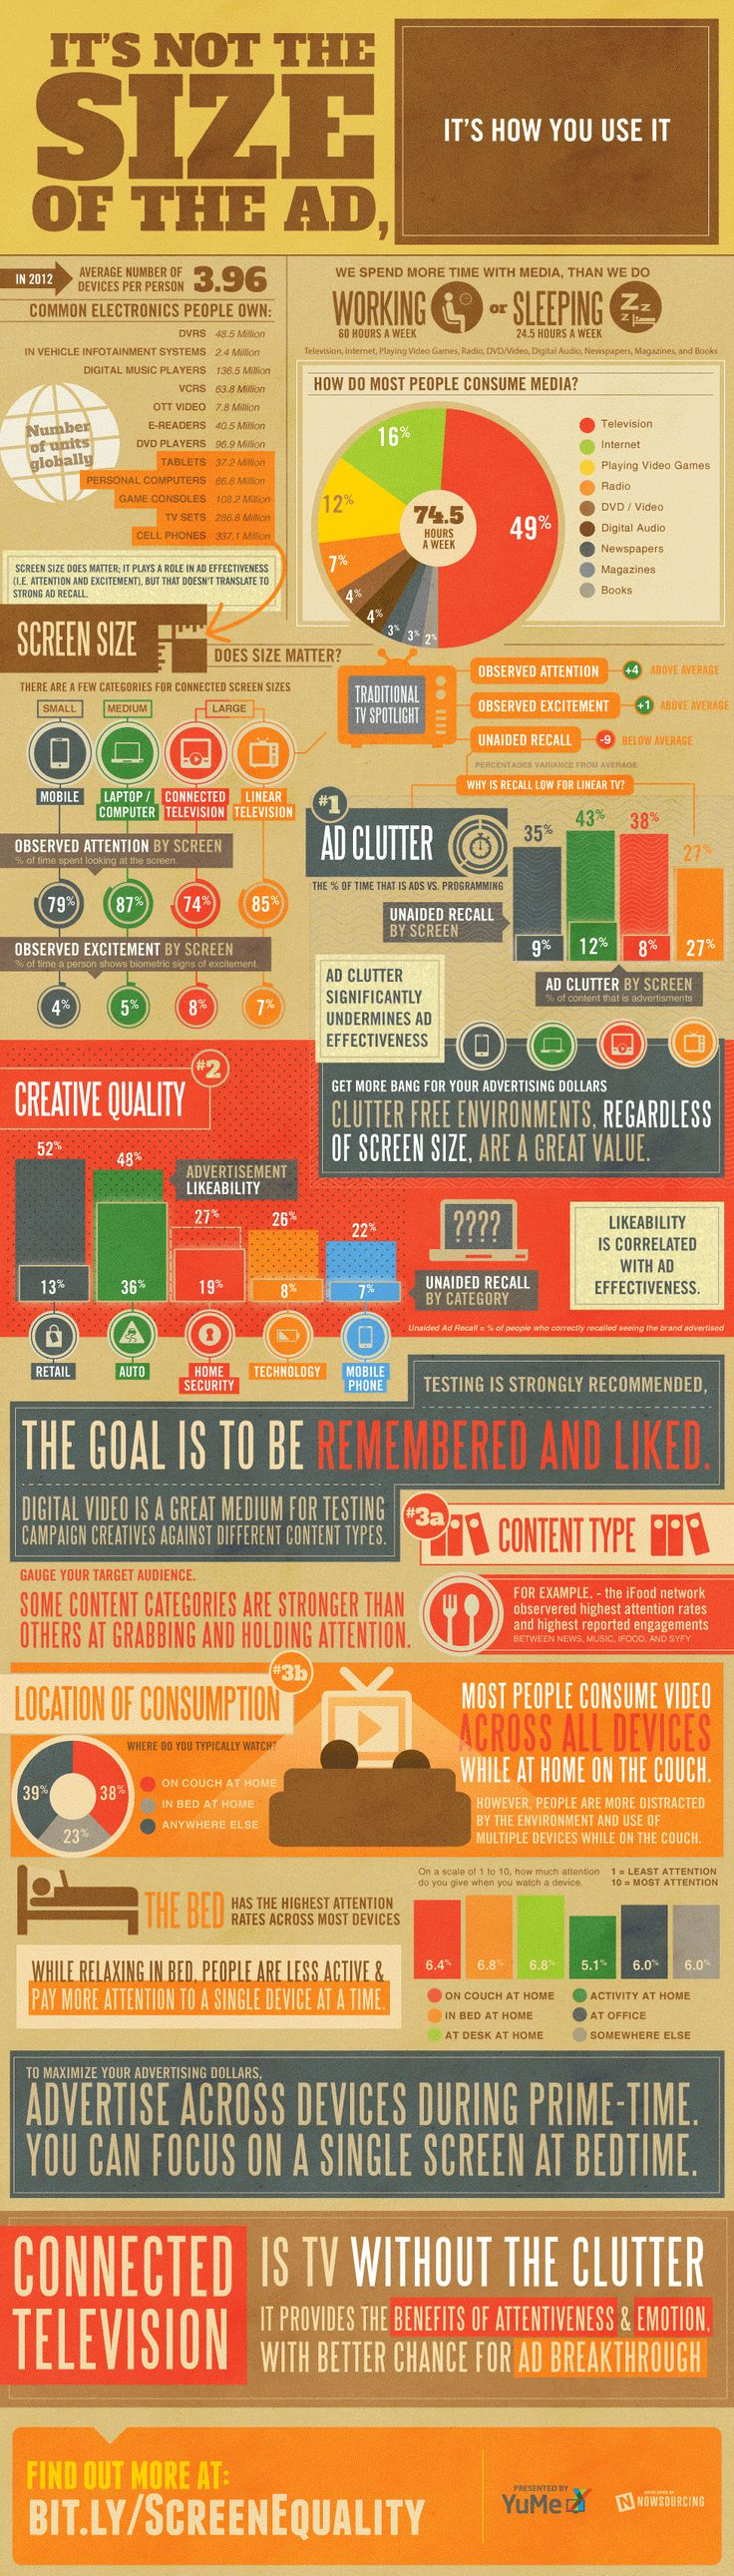 INFOGRAPHIC: Media Consumption - It's not the size of the ad; it's how you use it!